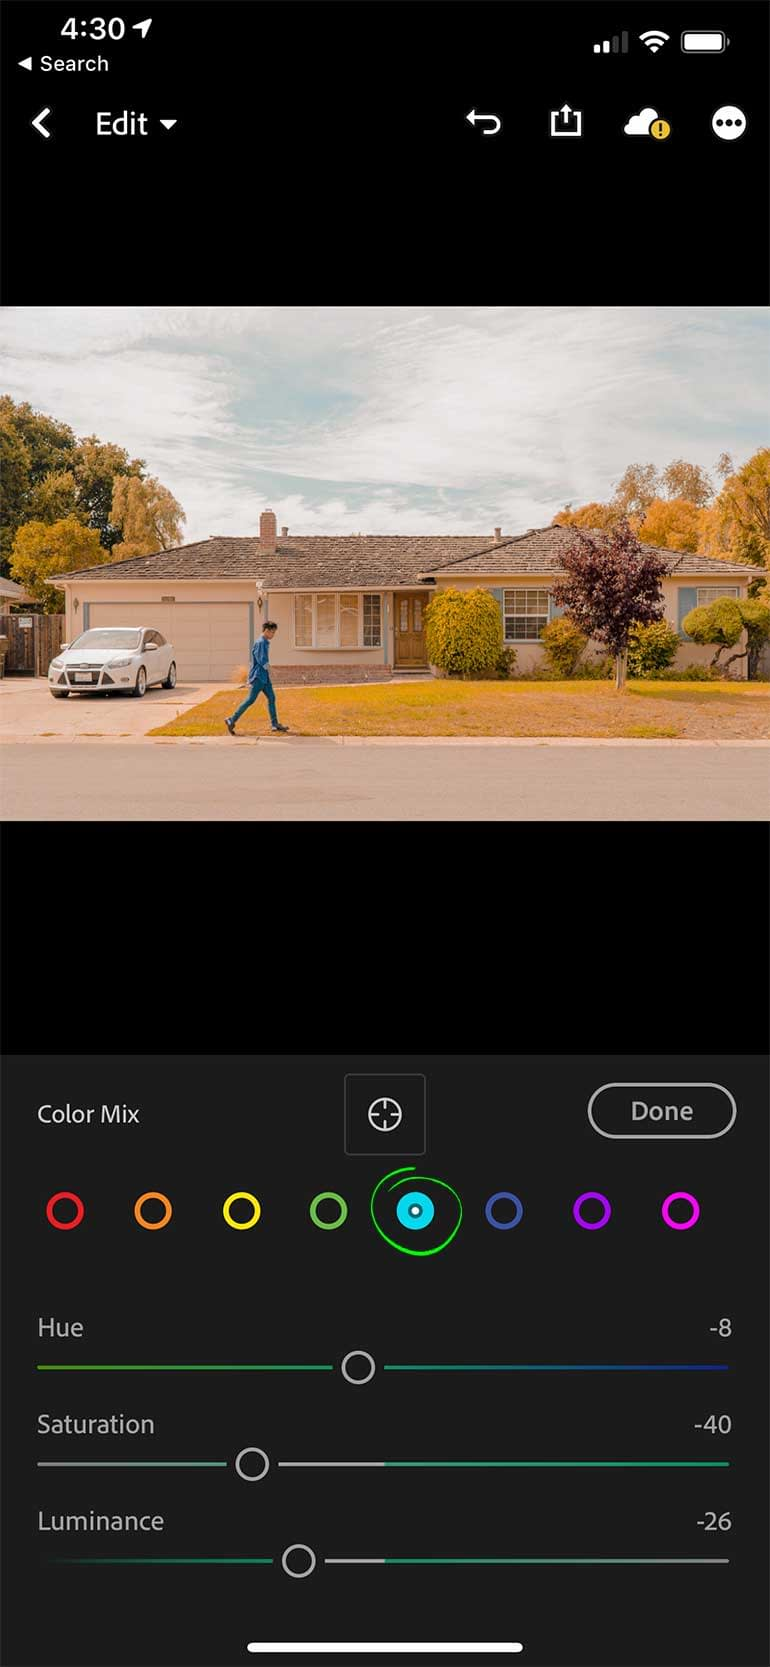 Color Mix Settings